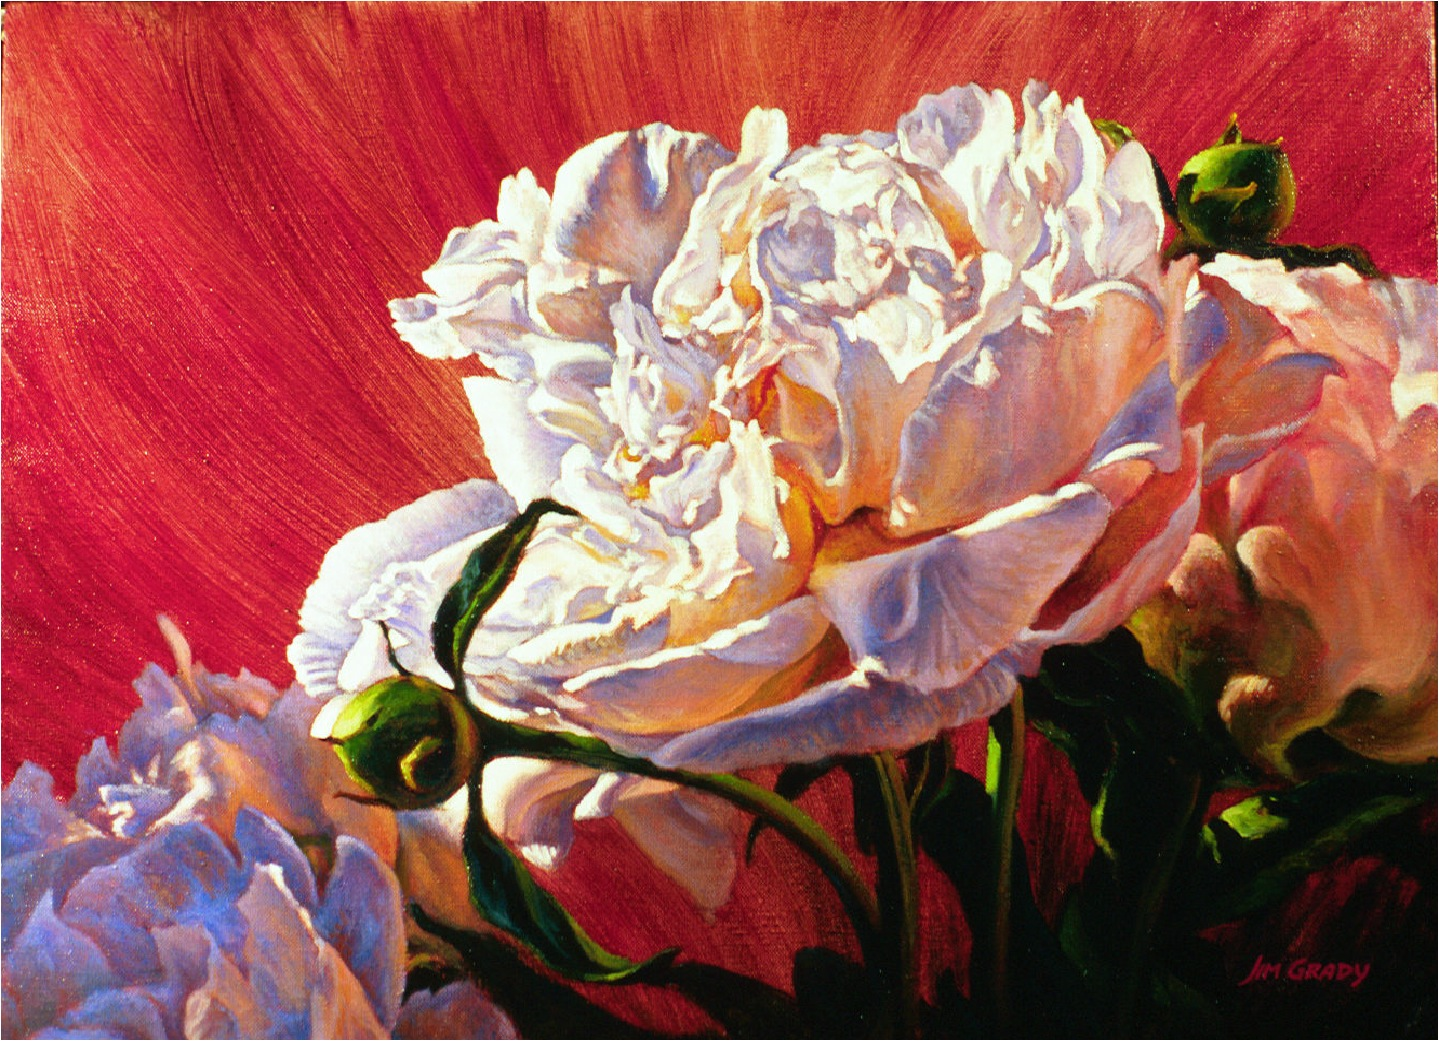 Peony - Fine art floral oil painting by Jim Grady